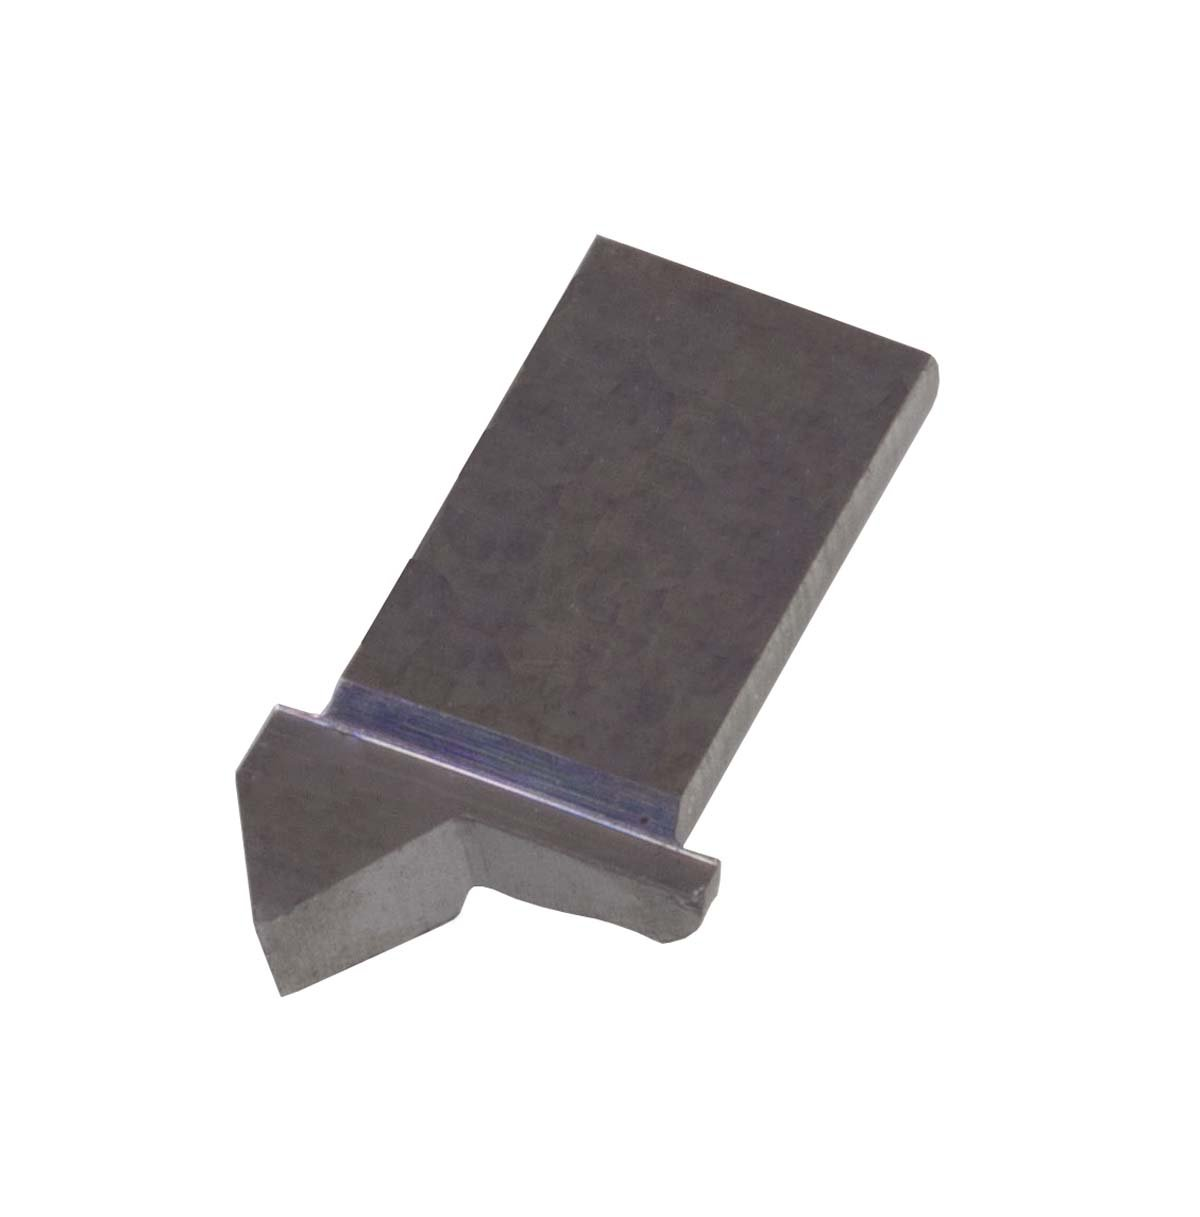 THINBIT MGTTD2LE TiAlN Coated 60/° Threading Insert 9 to 56 Threads per inch